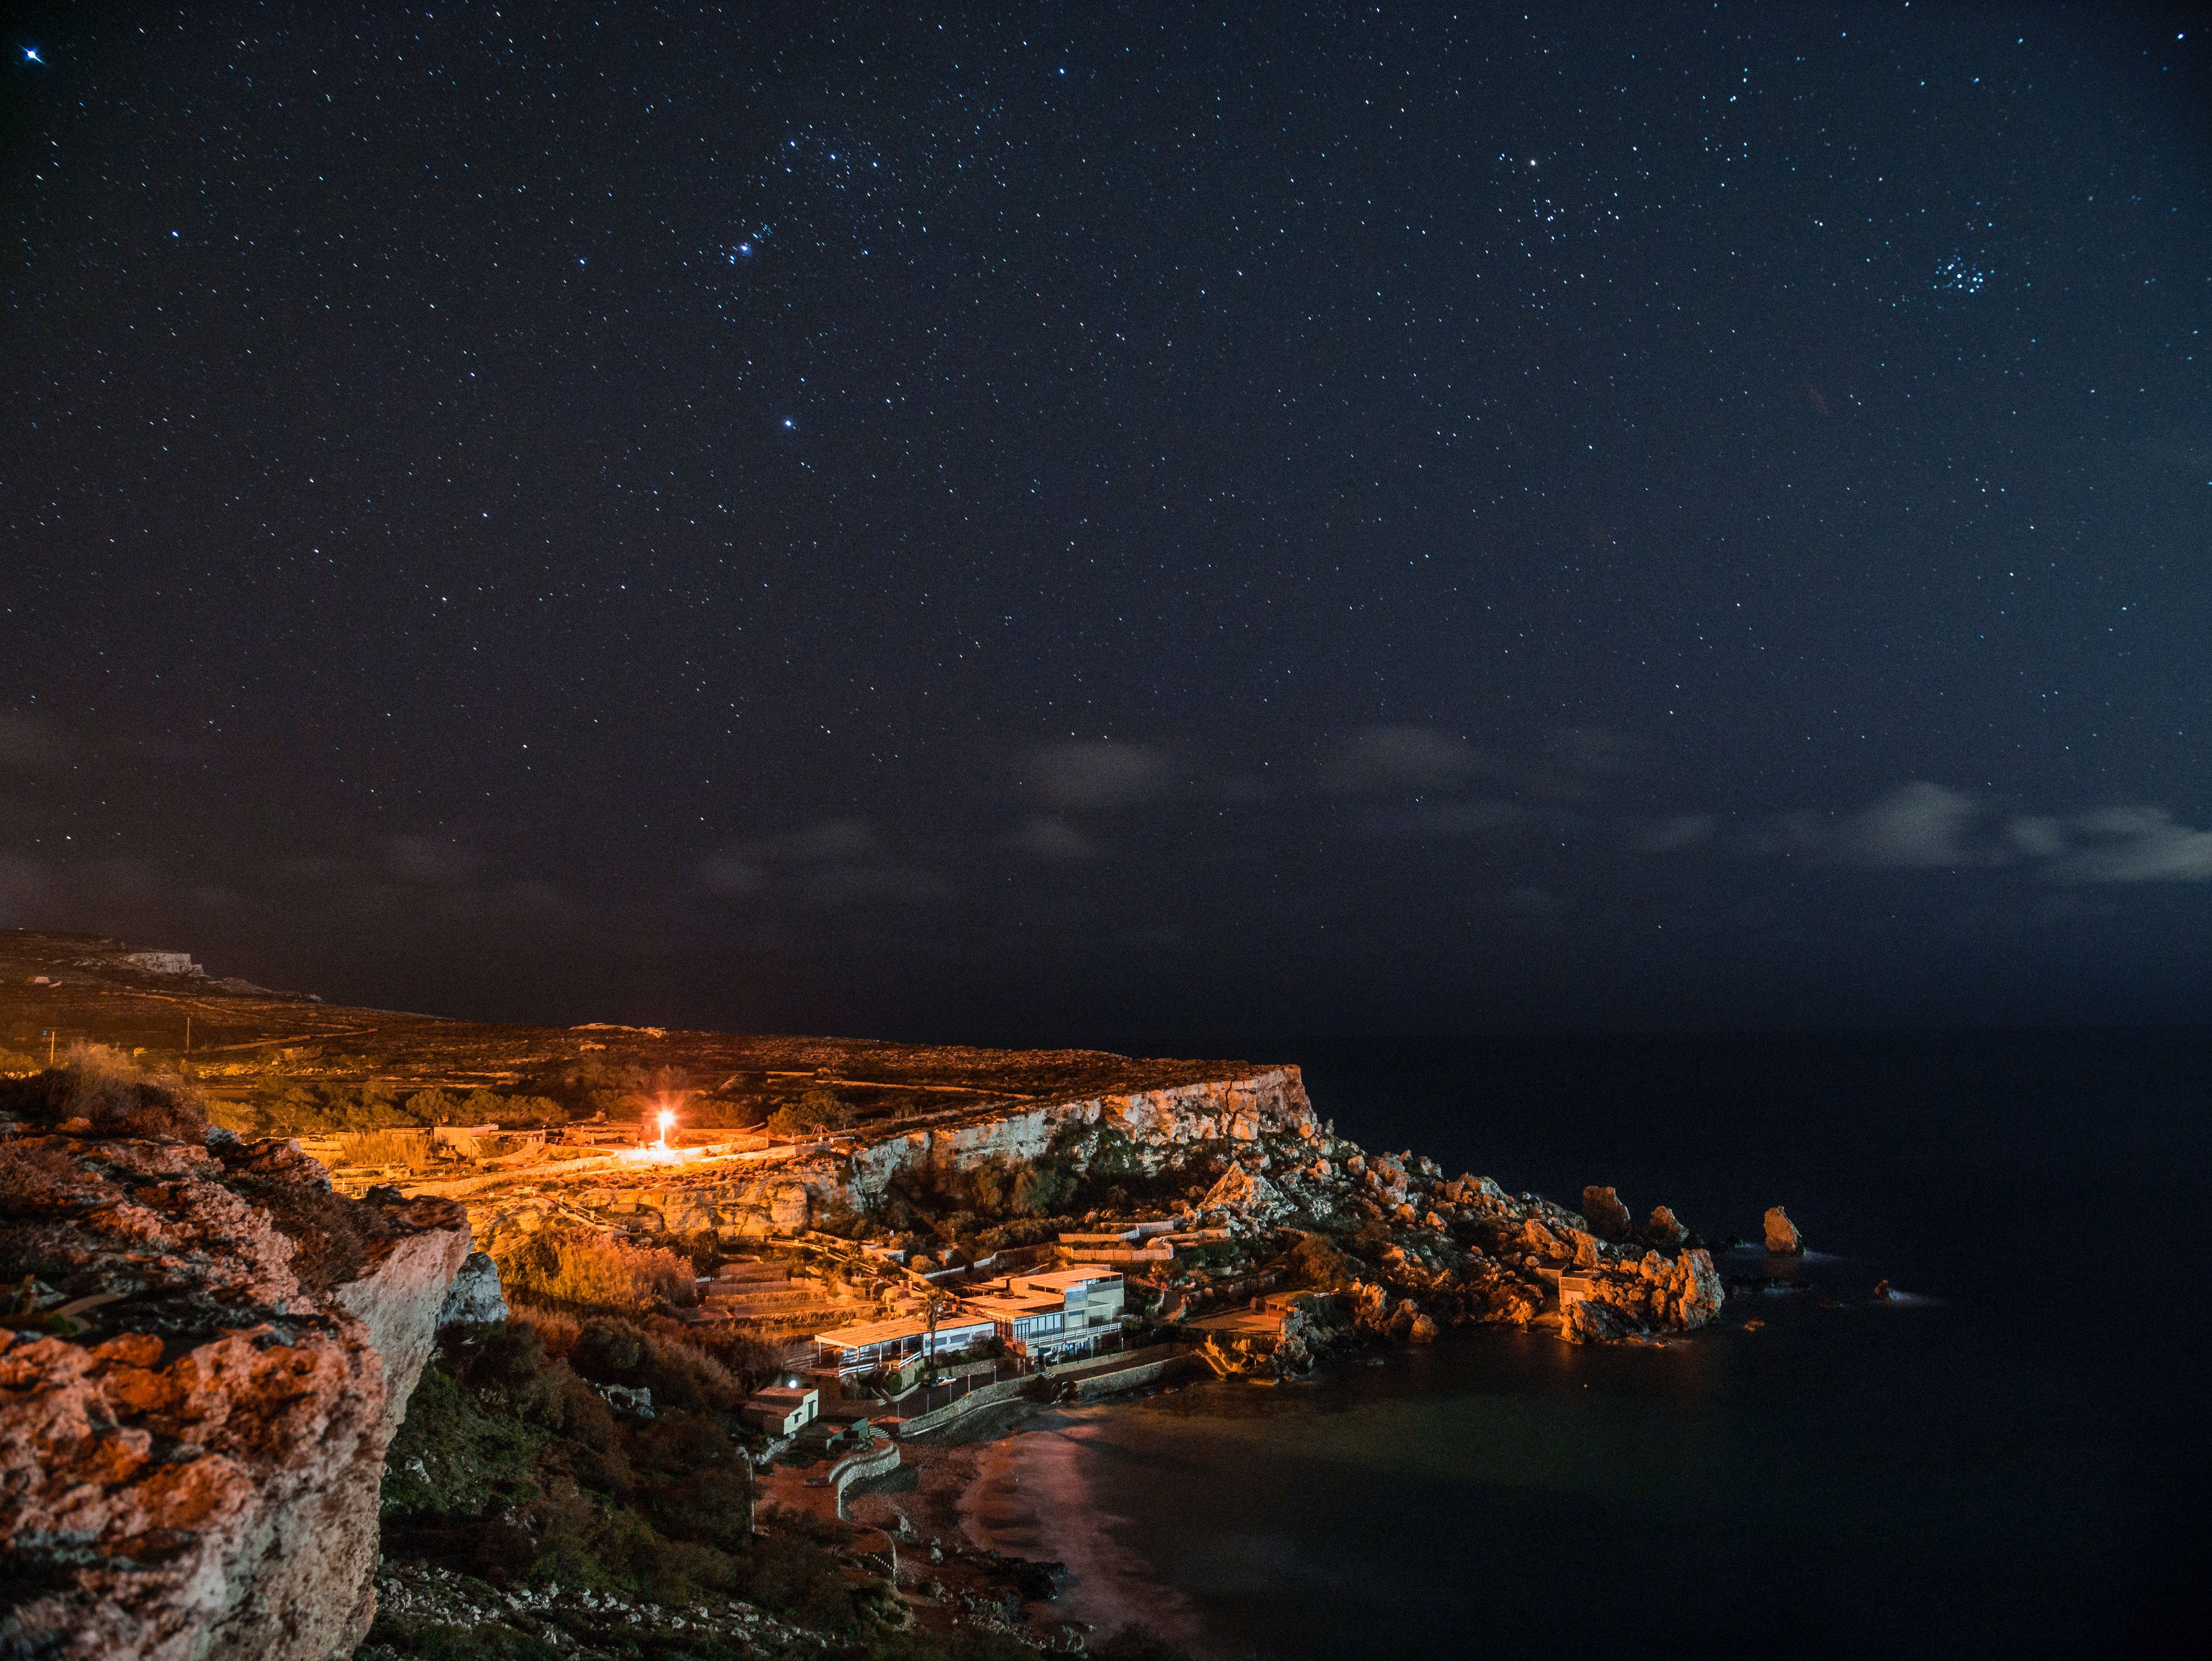 Rock cliff near body of water under clouds and sky during nighttime photo